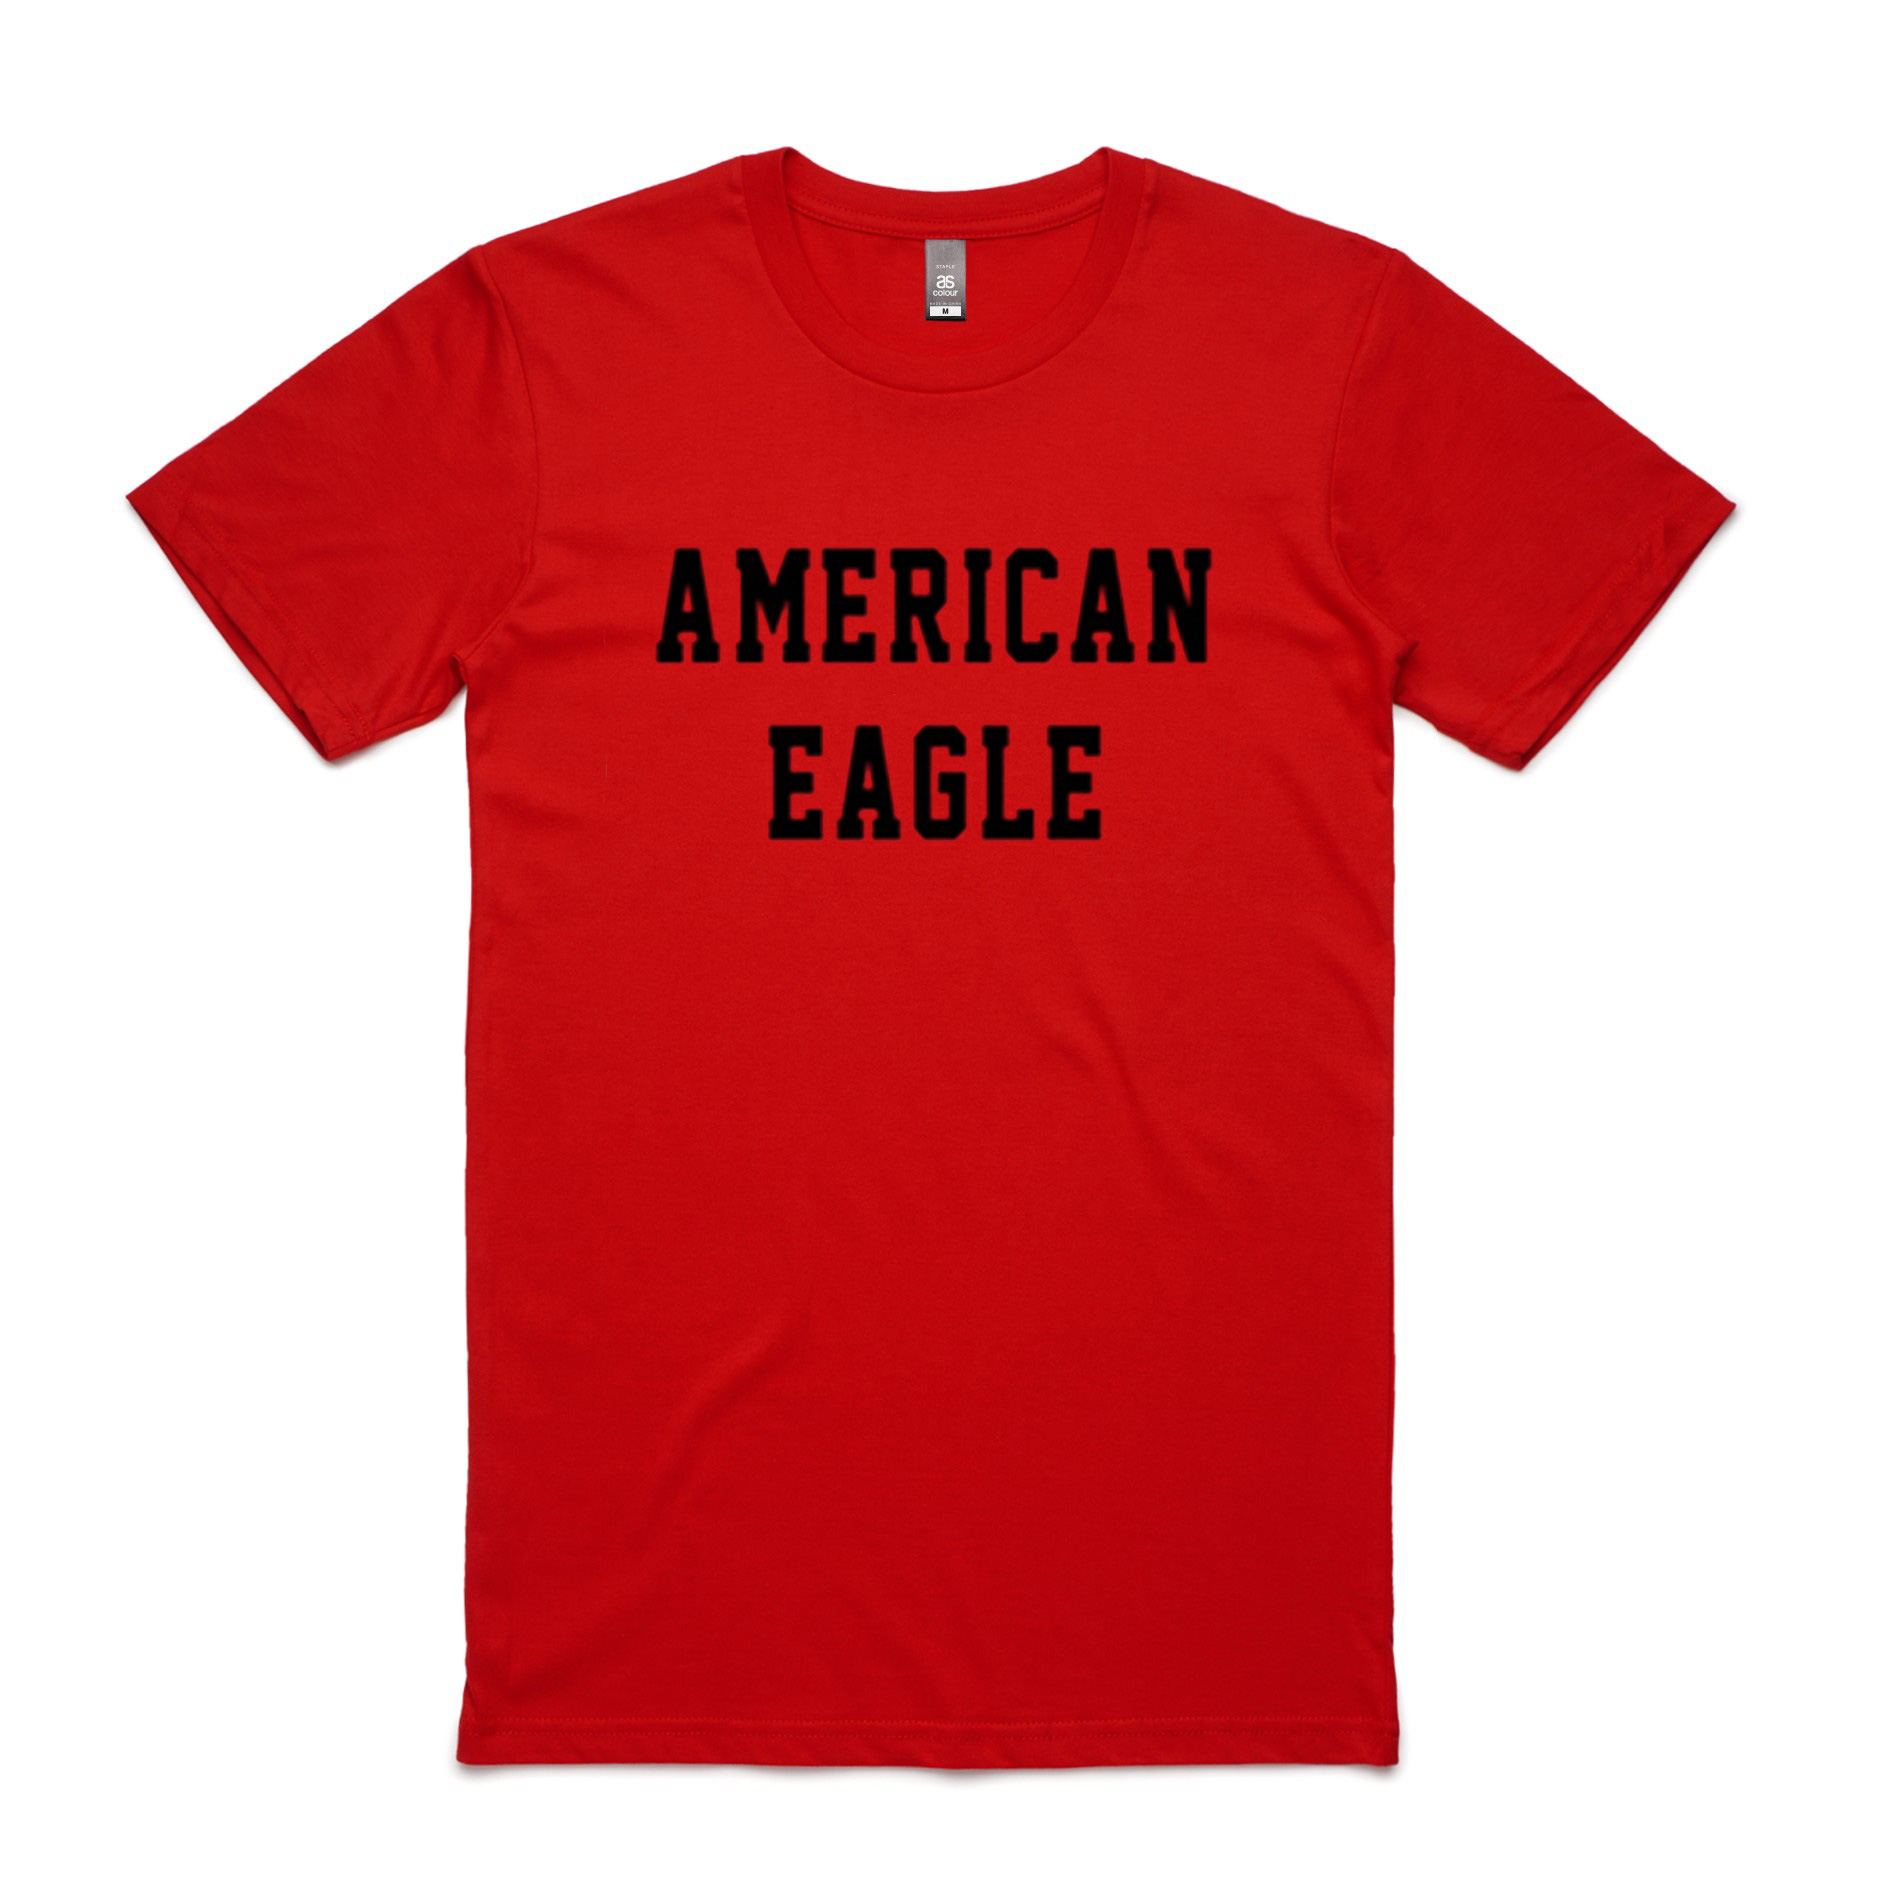 American eagle t shirt for American apparel t shirt design